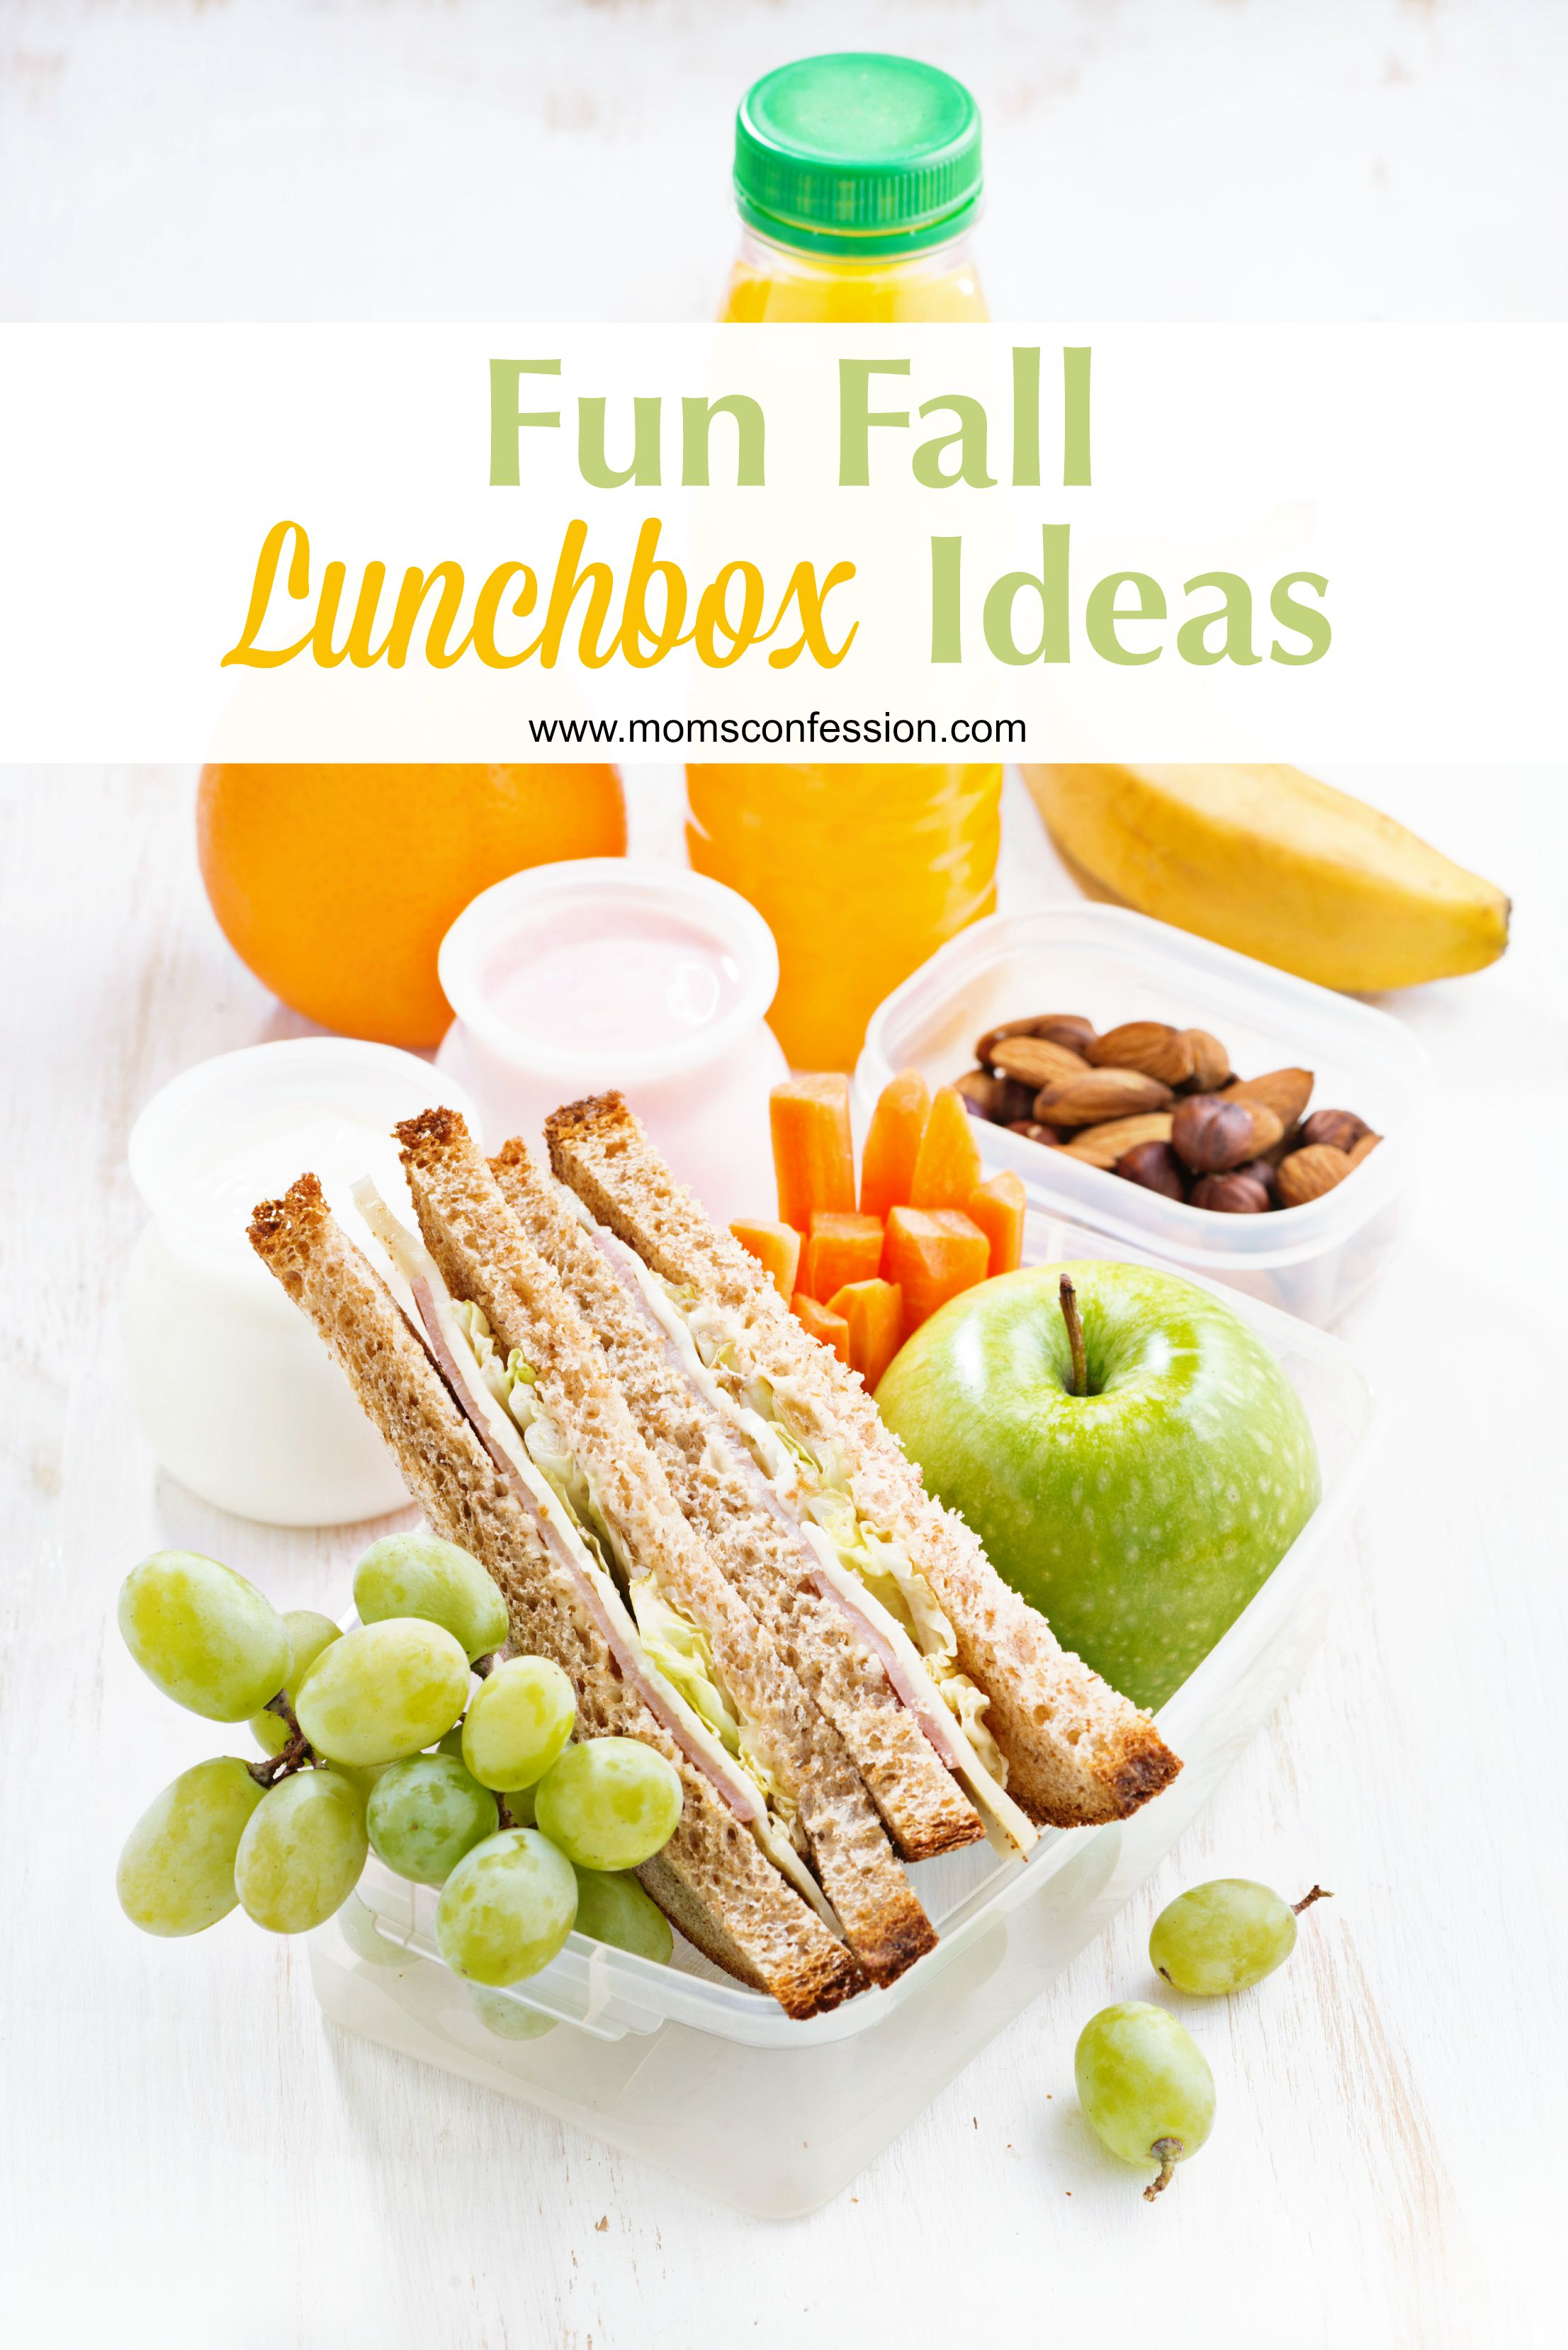 Lunchbox Ideas like our list of Fun Fall Lunchbox Ideas make it easy to pack lunch for your kids each day! Grab our tips and make your kids lunch they love!